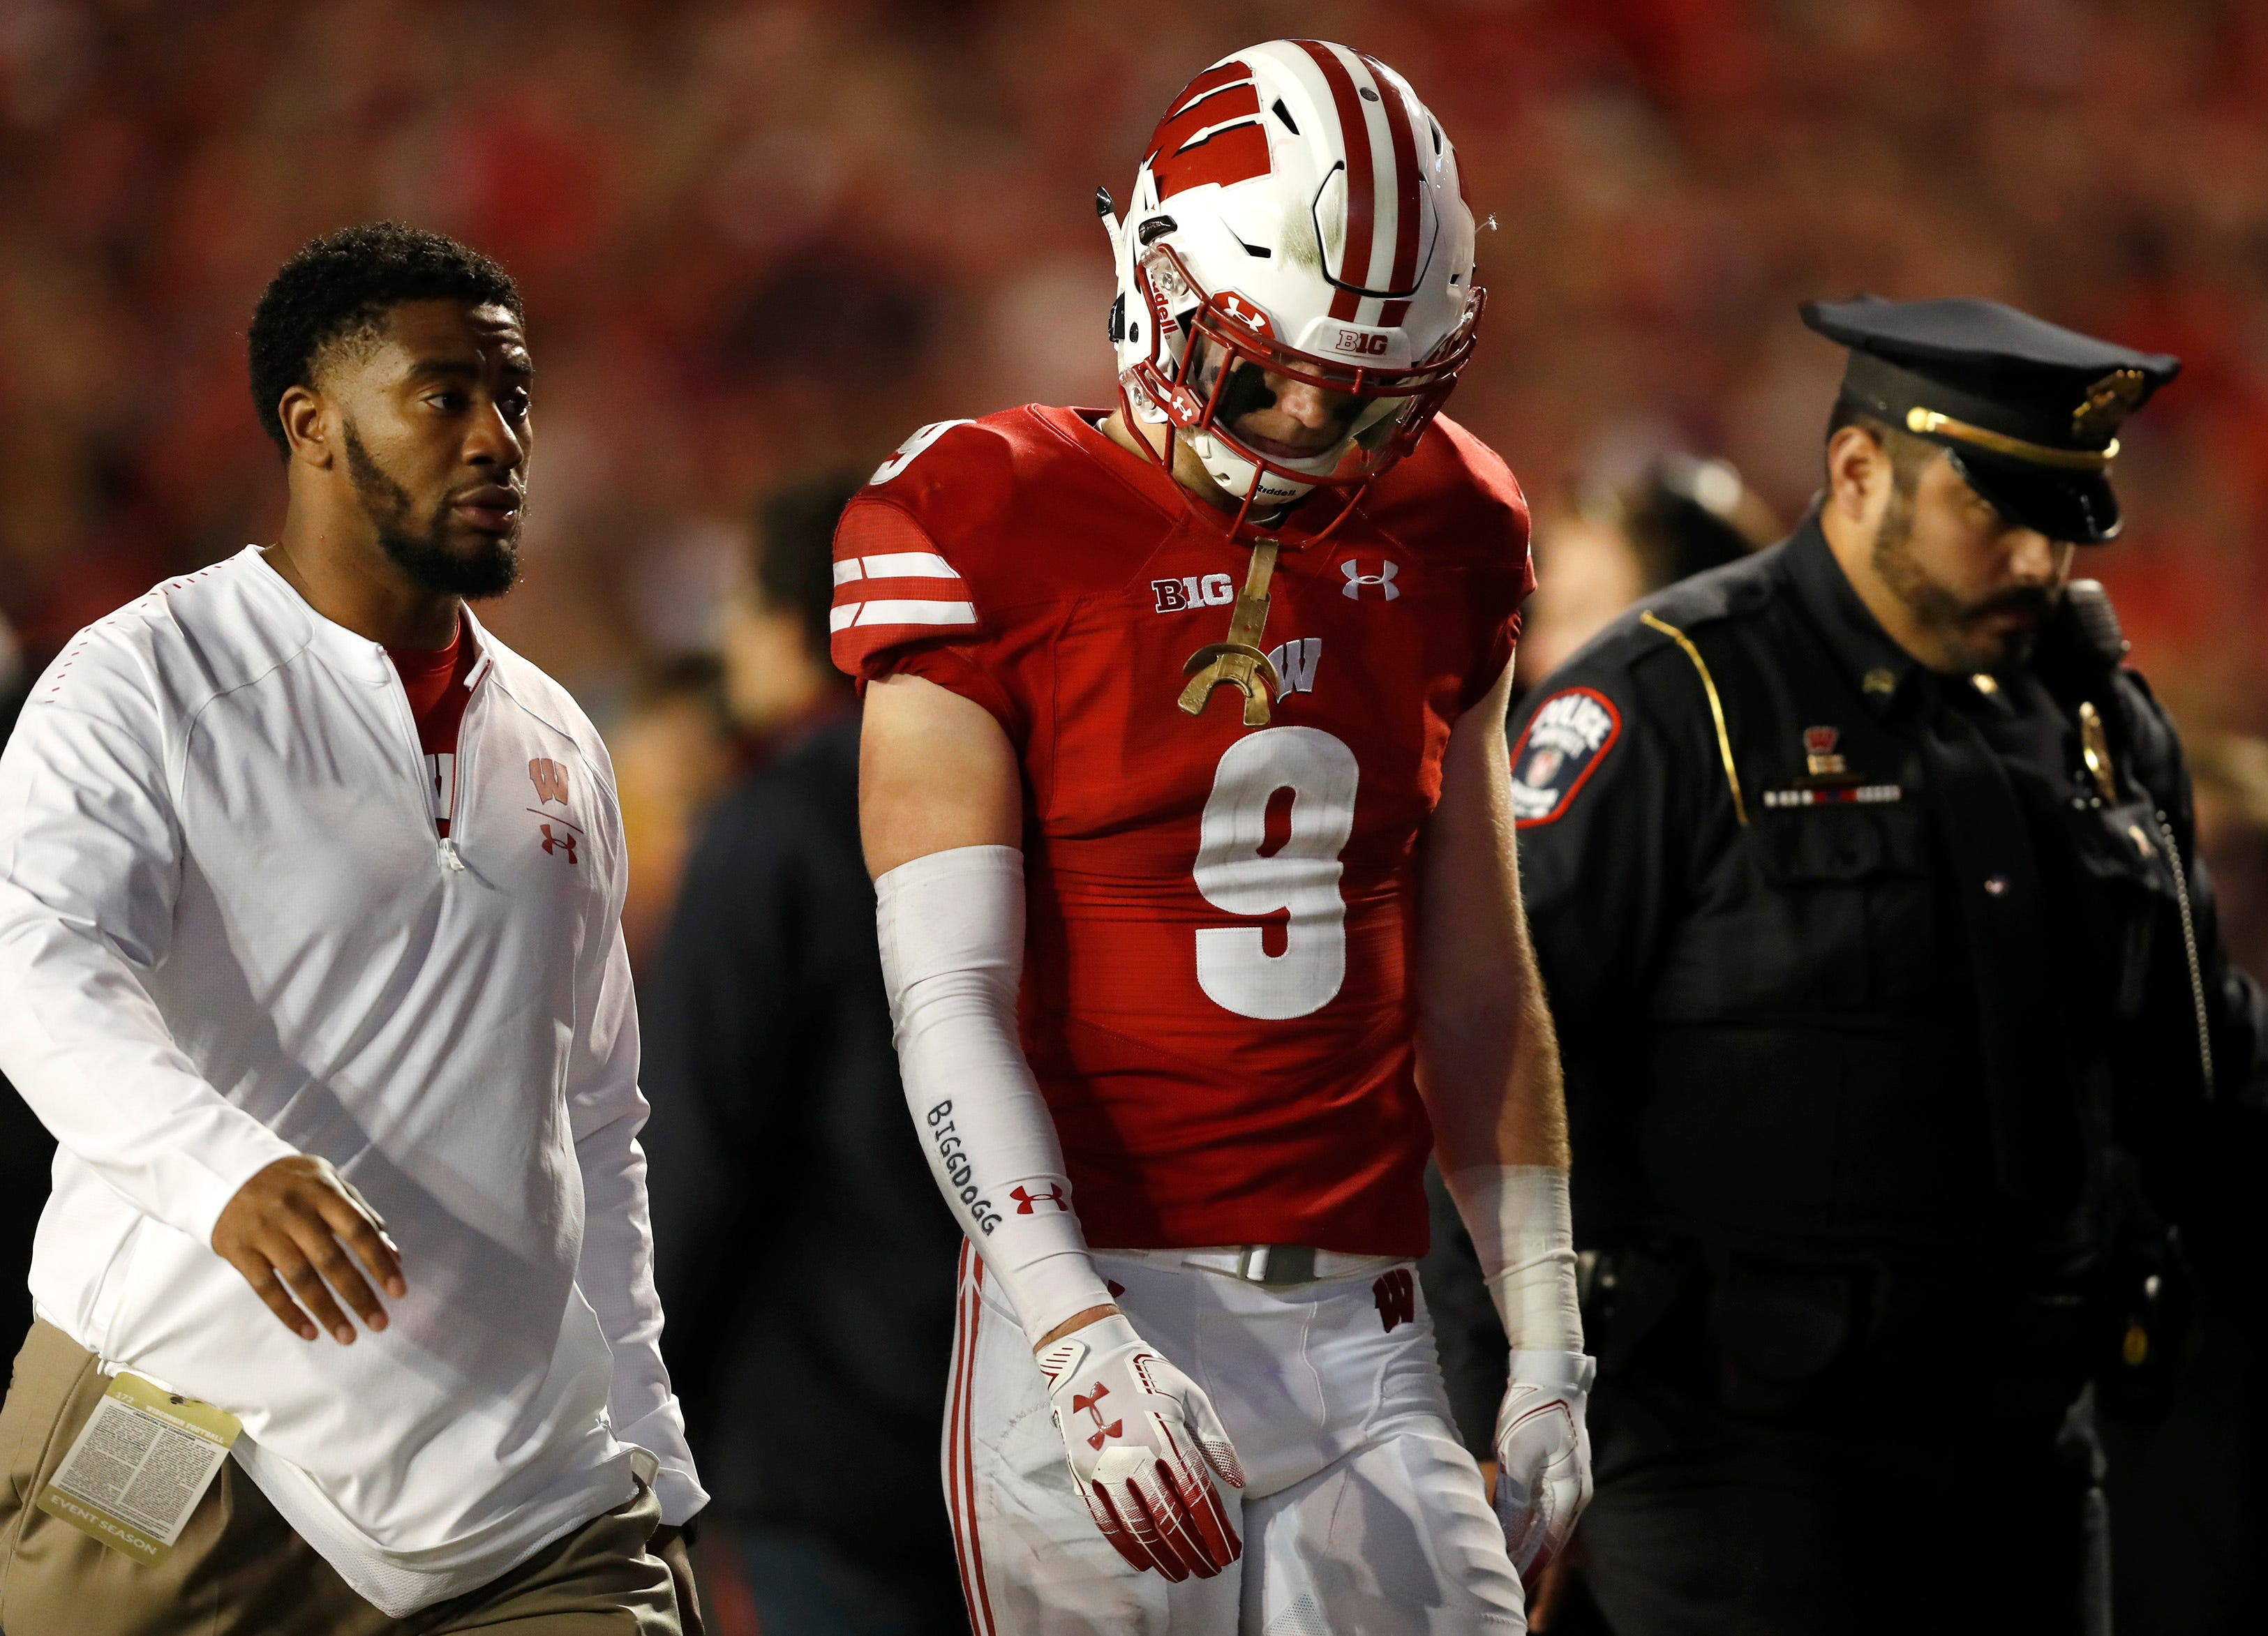 Wisconsin safety Scott Nelson is escorted off the field after being called for targeting  against Nebraska on Oct. 6.